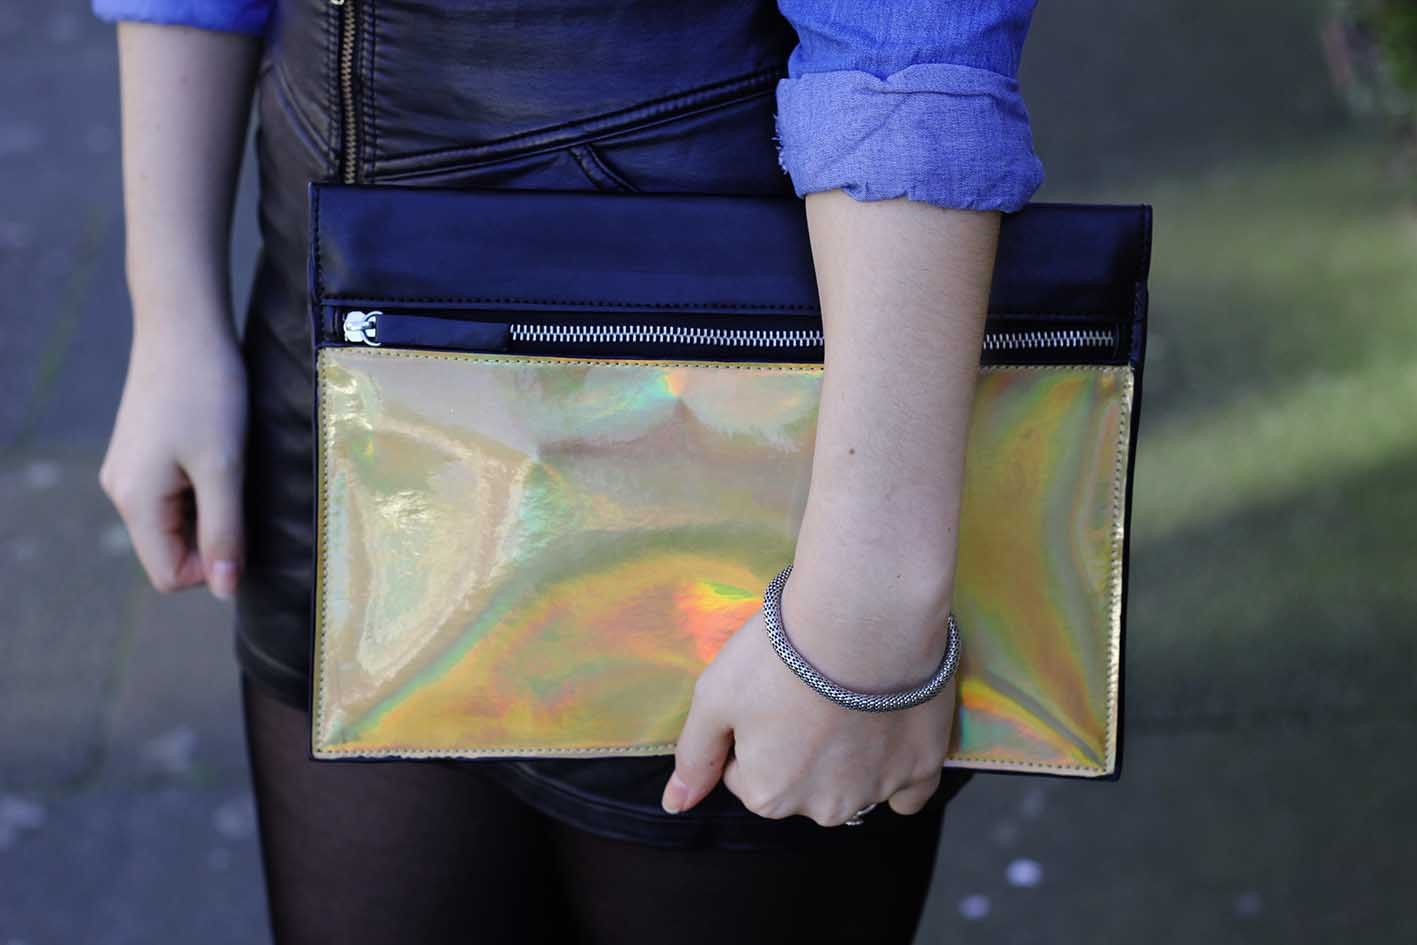 holographic hologram bag